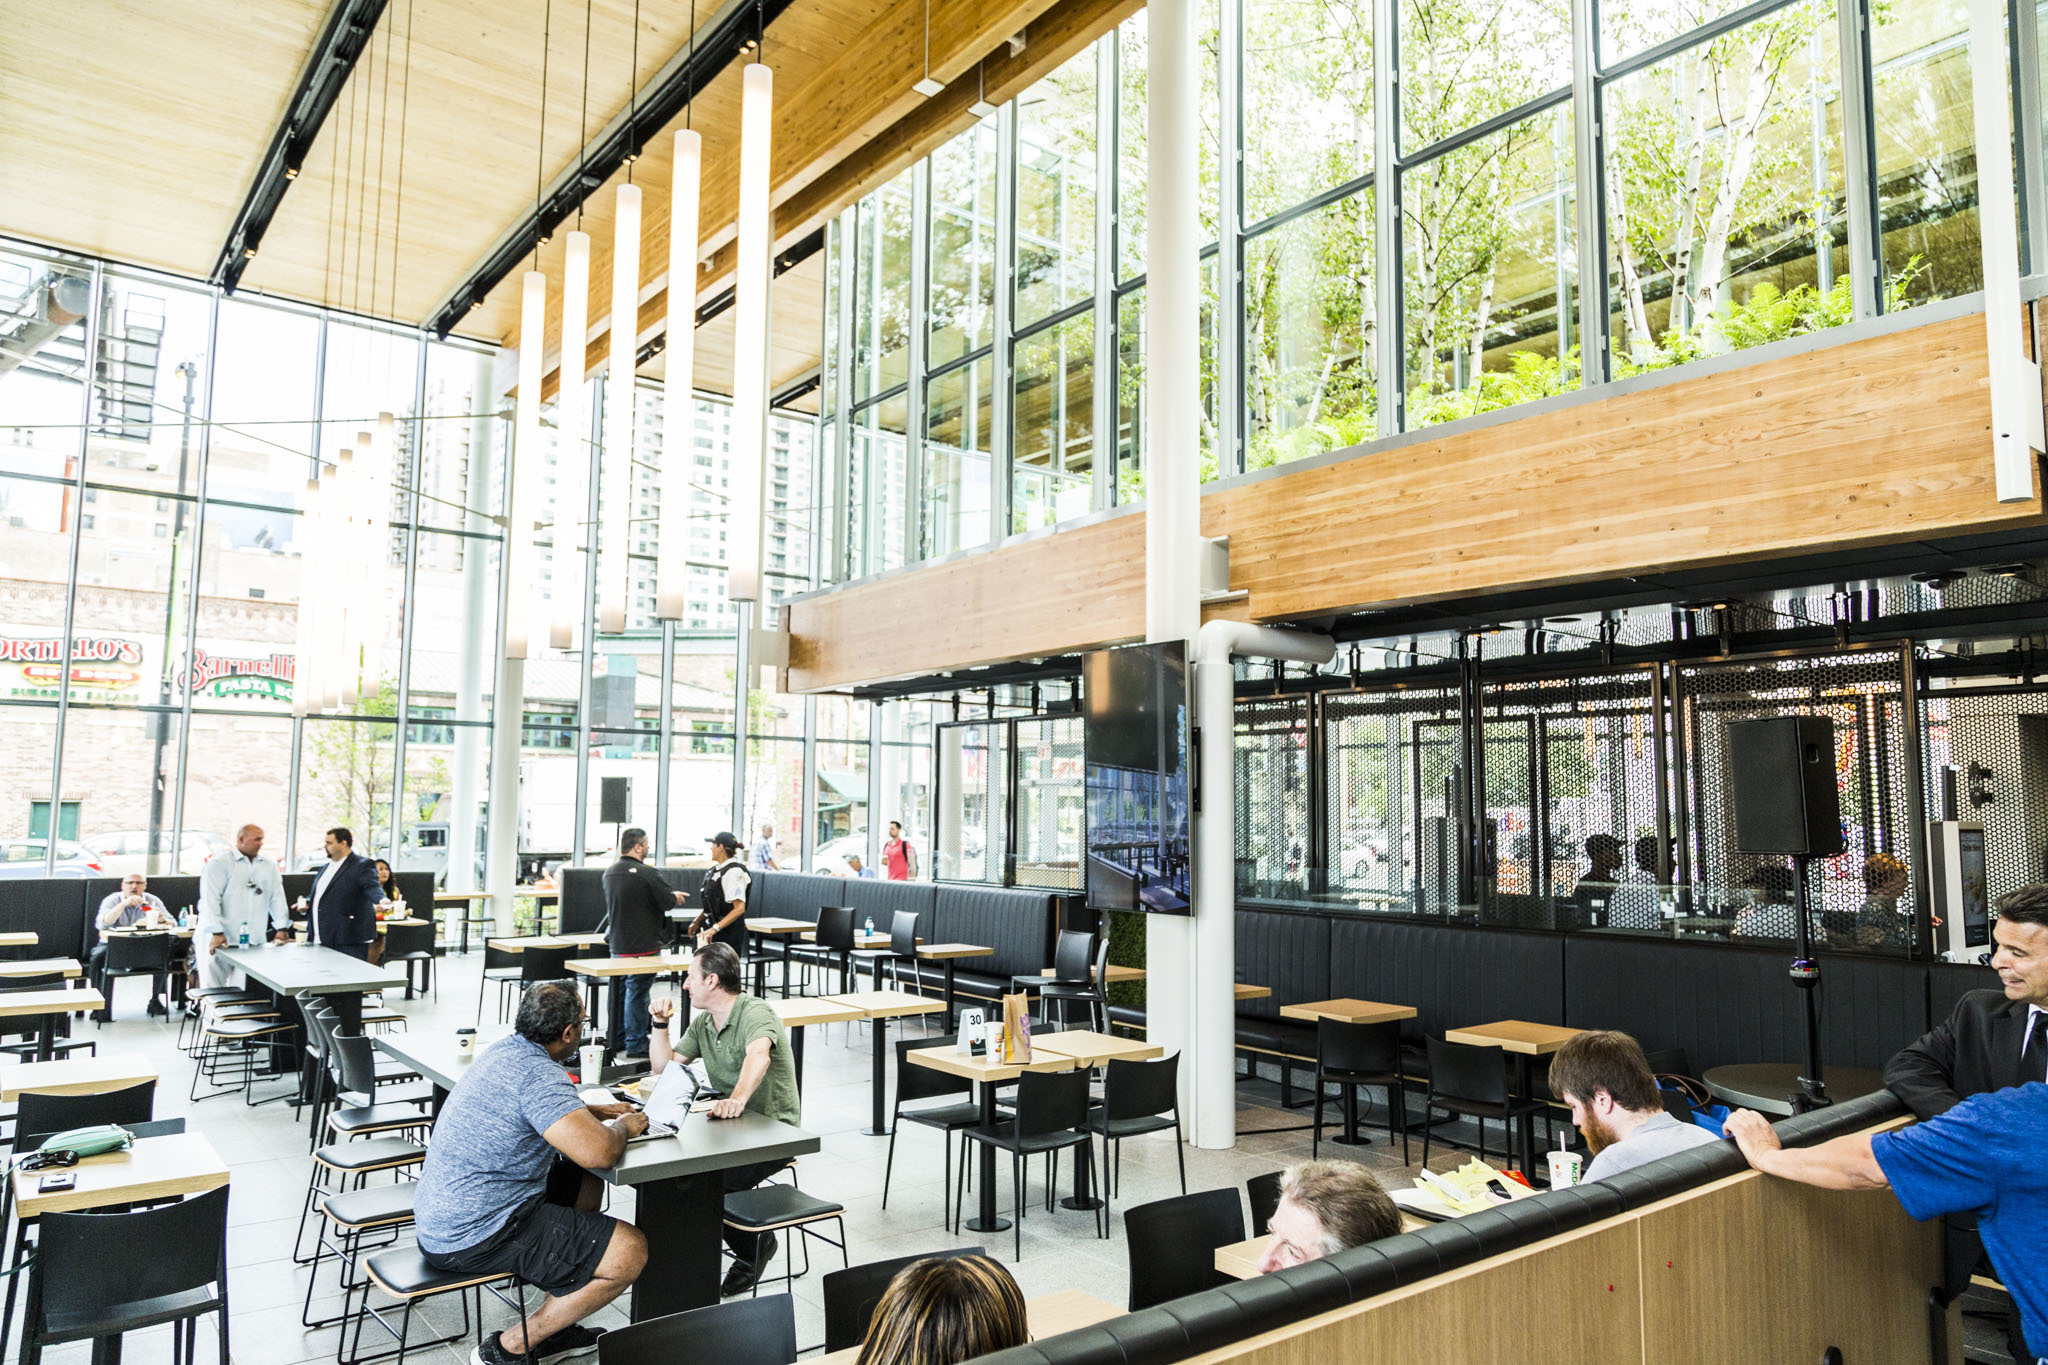 Take a look inside McDonald's new flagship restaurant in River North